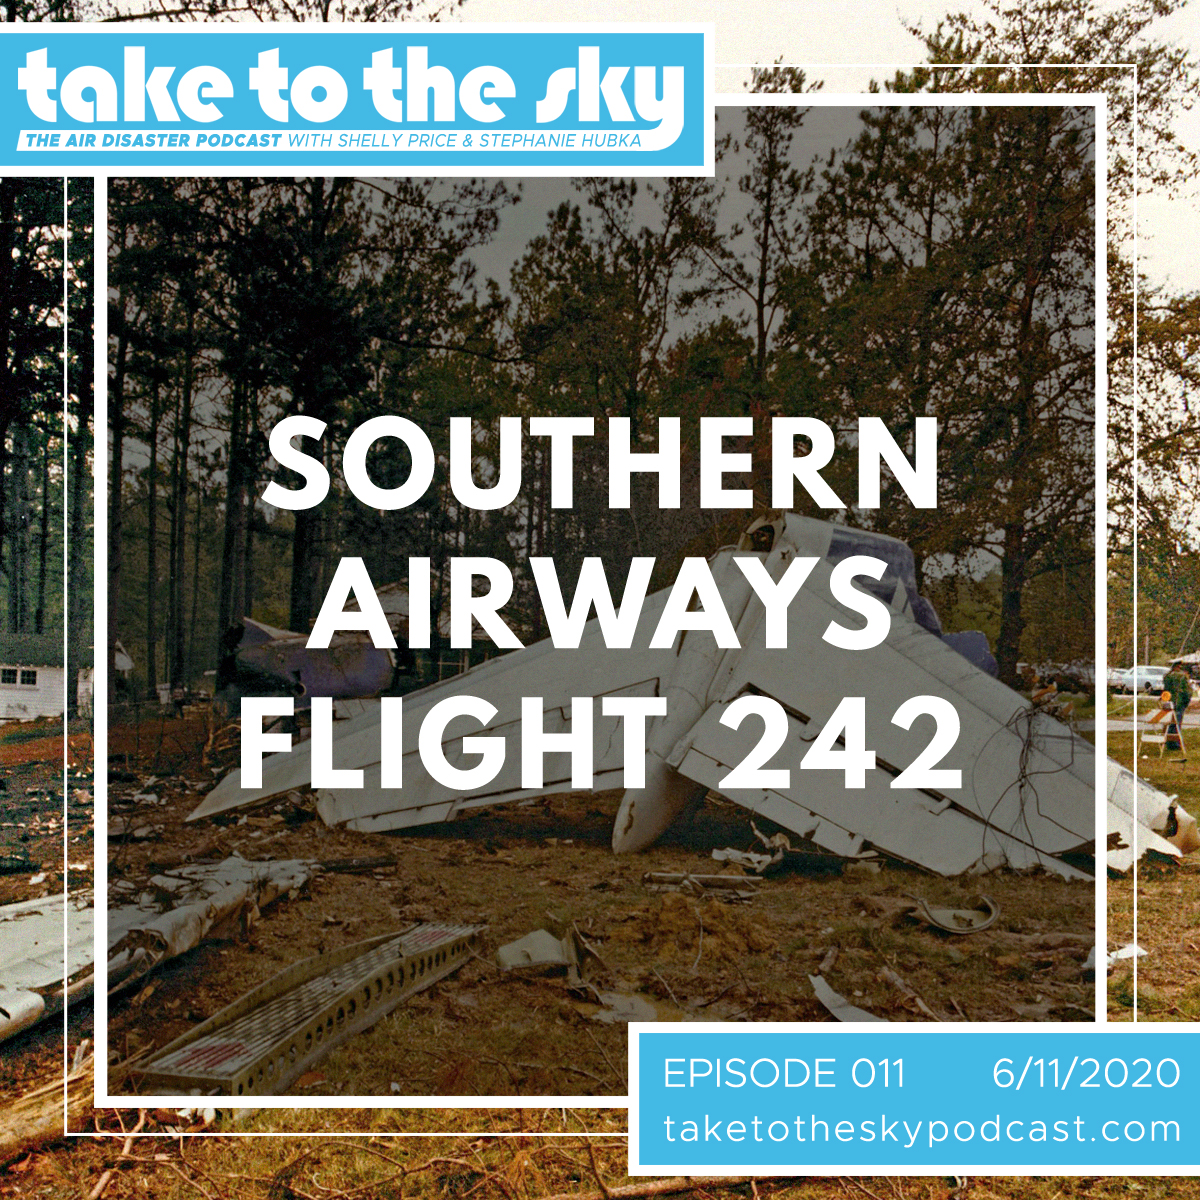 Take to the Sky Episode 011: Southern Airways Flight 242